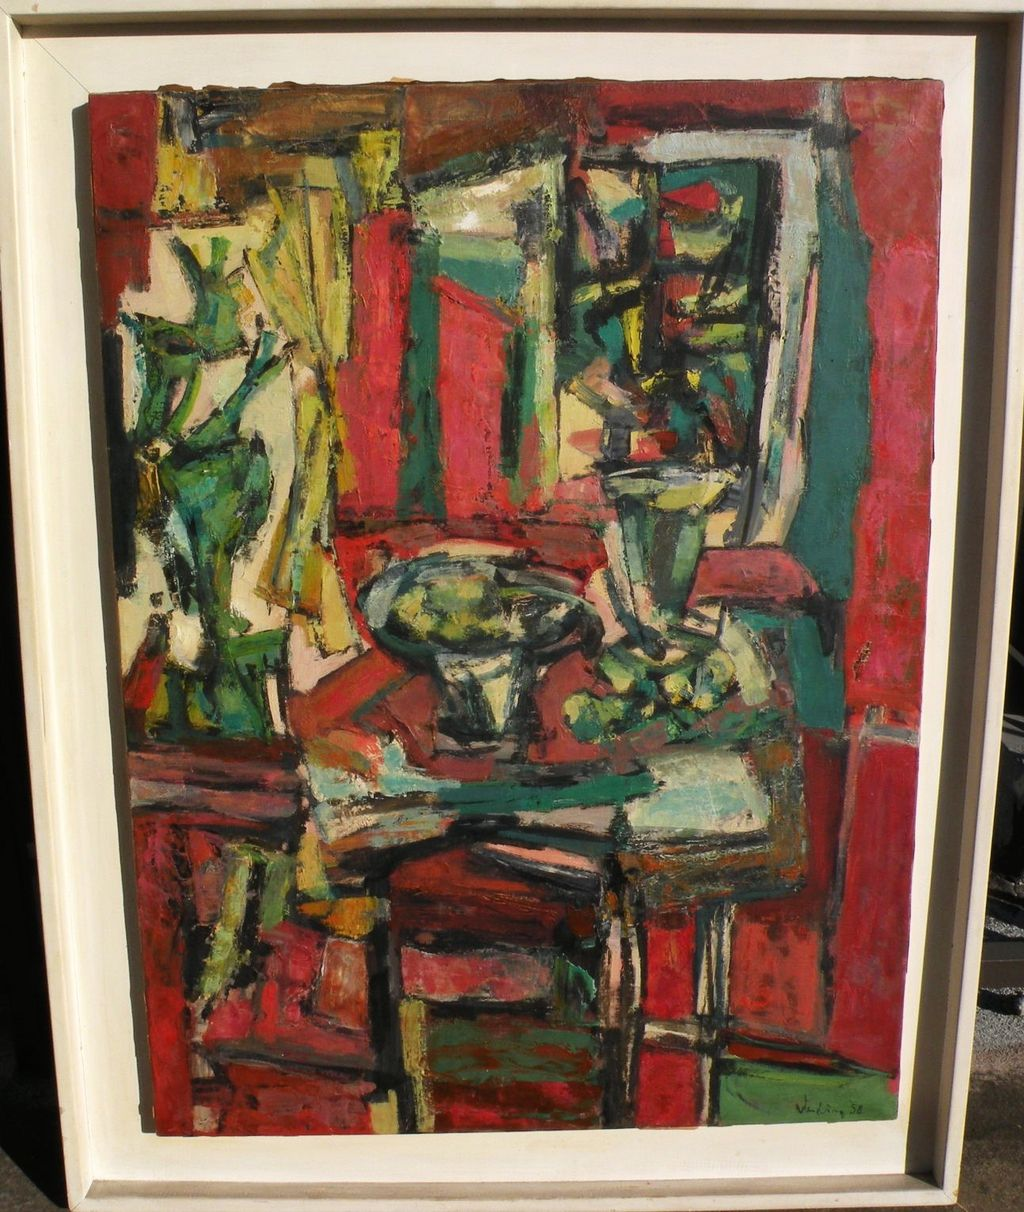 ERWIN WENDING (1914-1993) large mid century modern still life painting by listed Jewish German-American artist